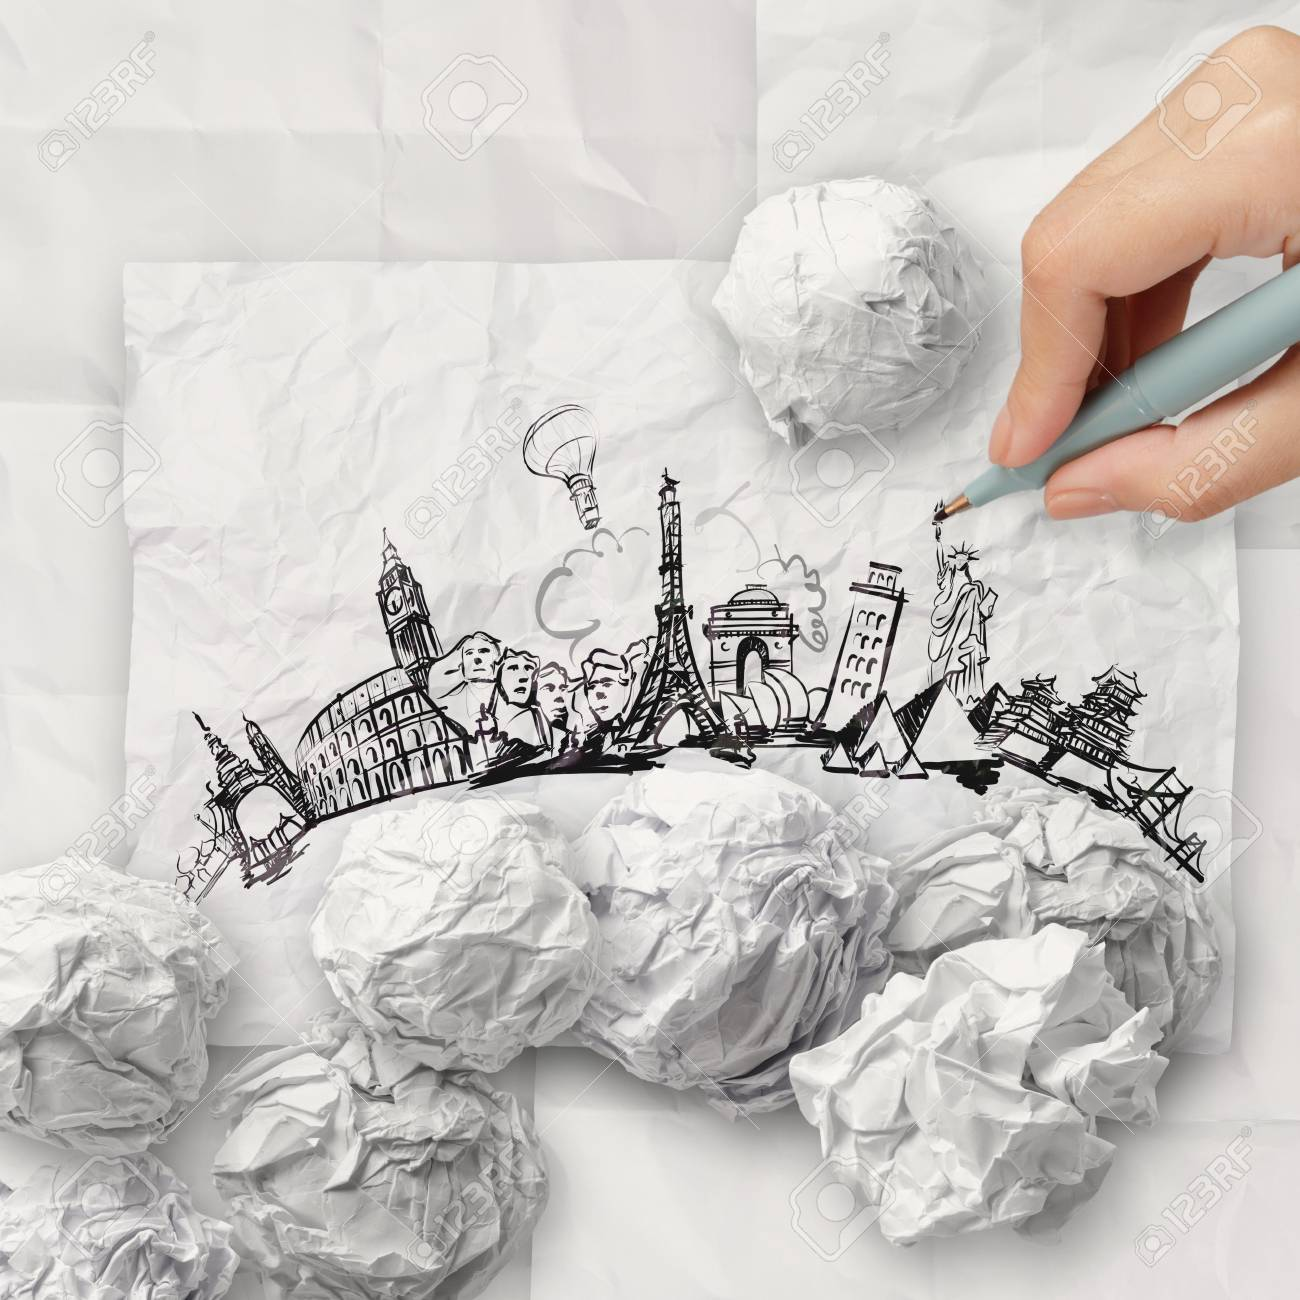 crumpled paper and traveling around the world as concept Stock Photo - 22006820